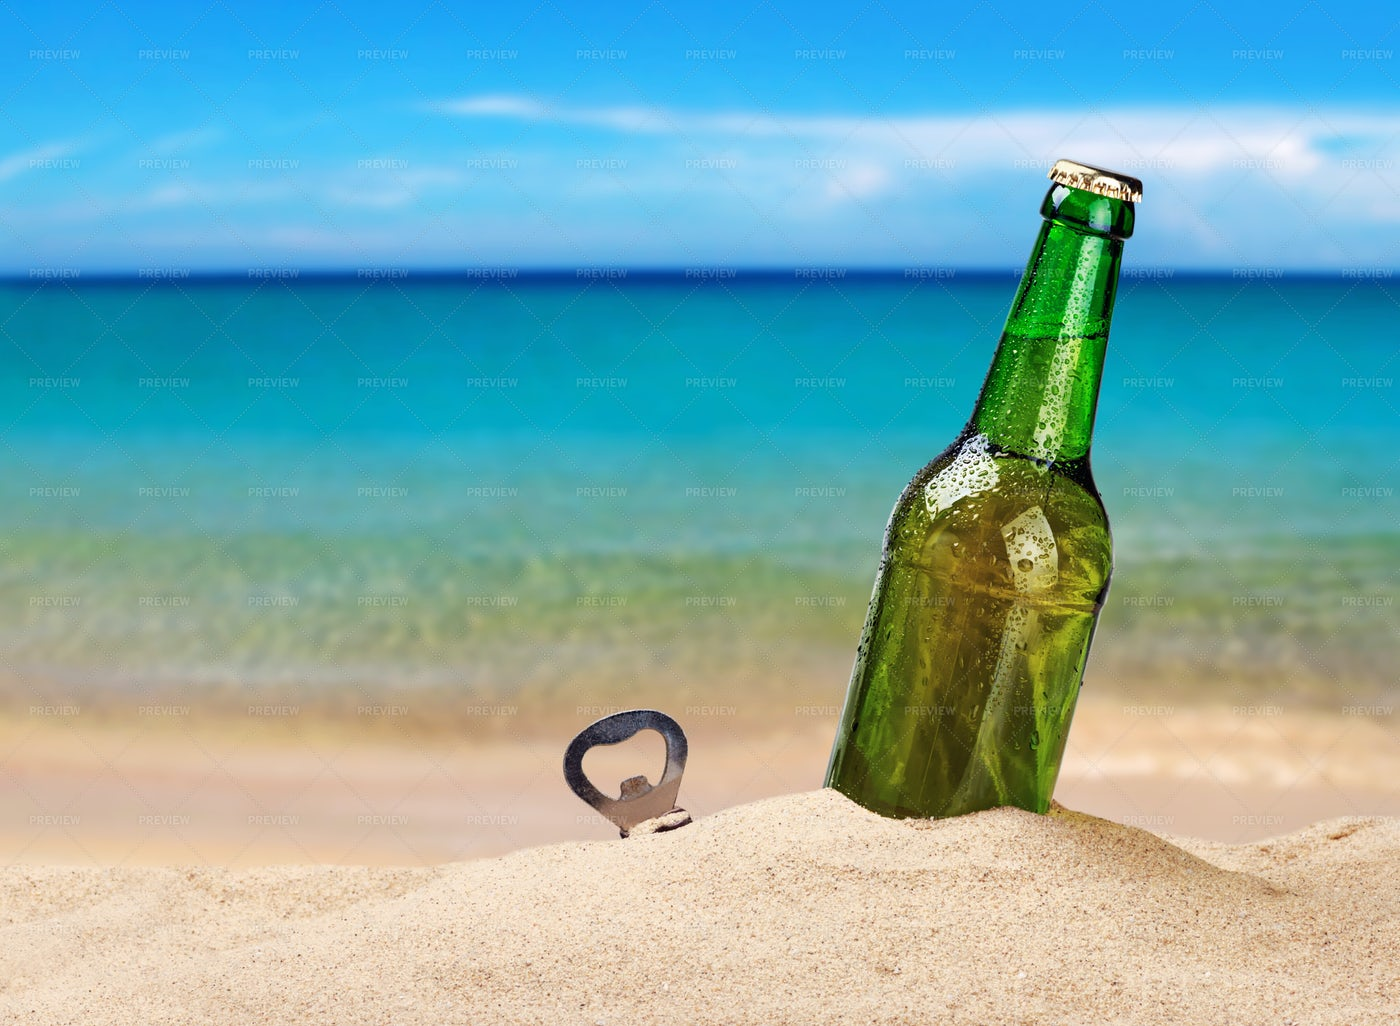 Beer Bottle In The Sand: Stock Photos